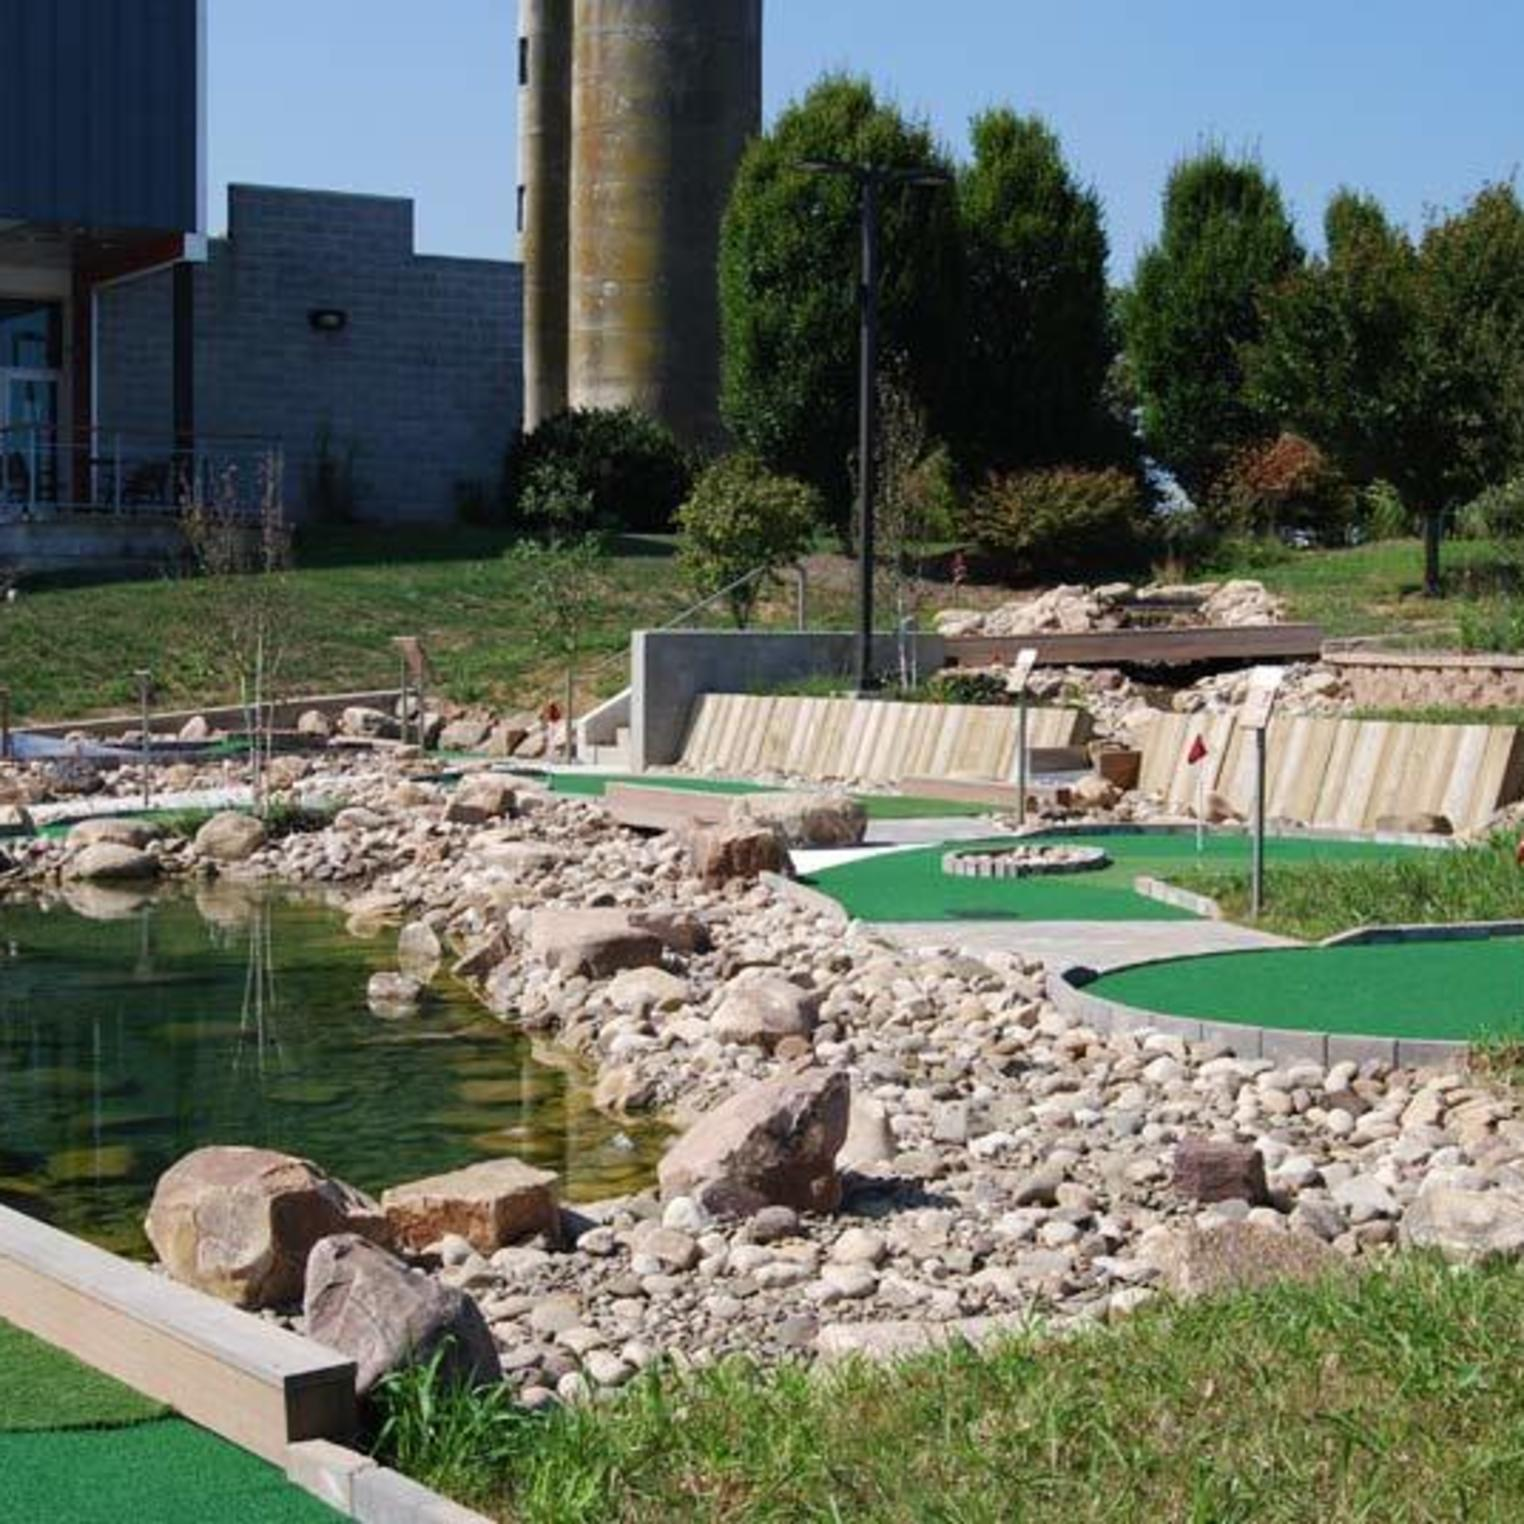 RVG Mini Golf